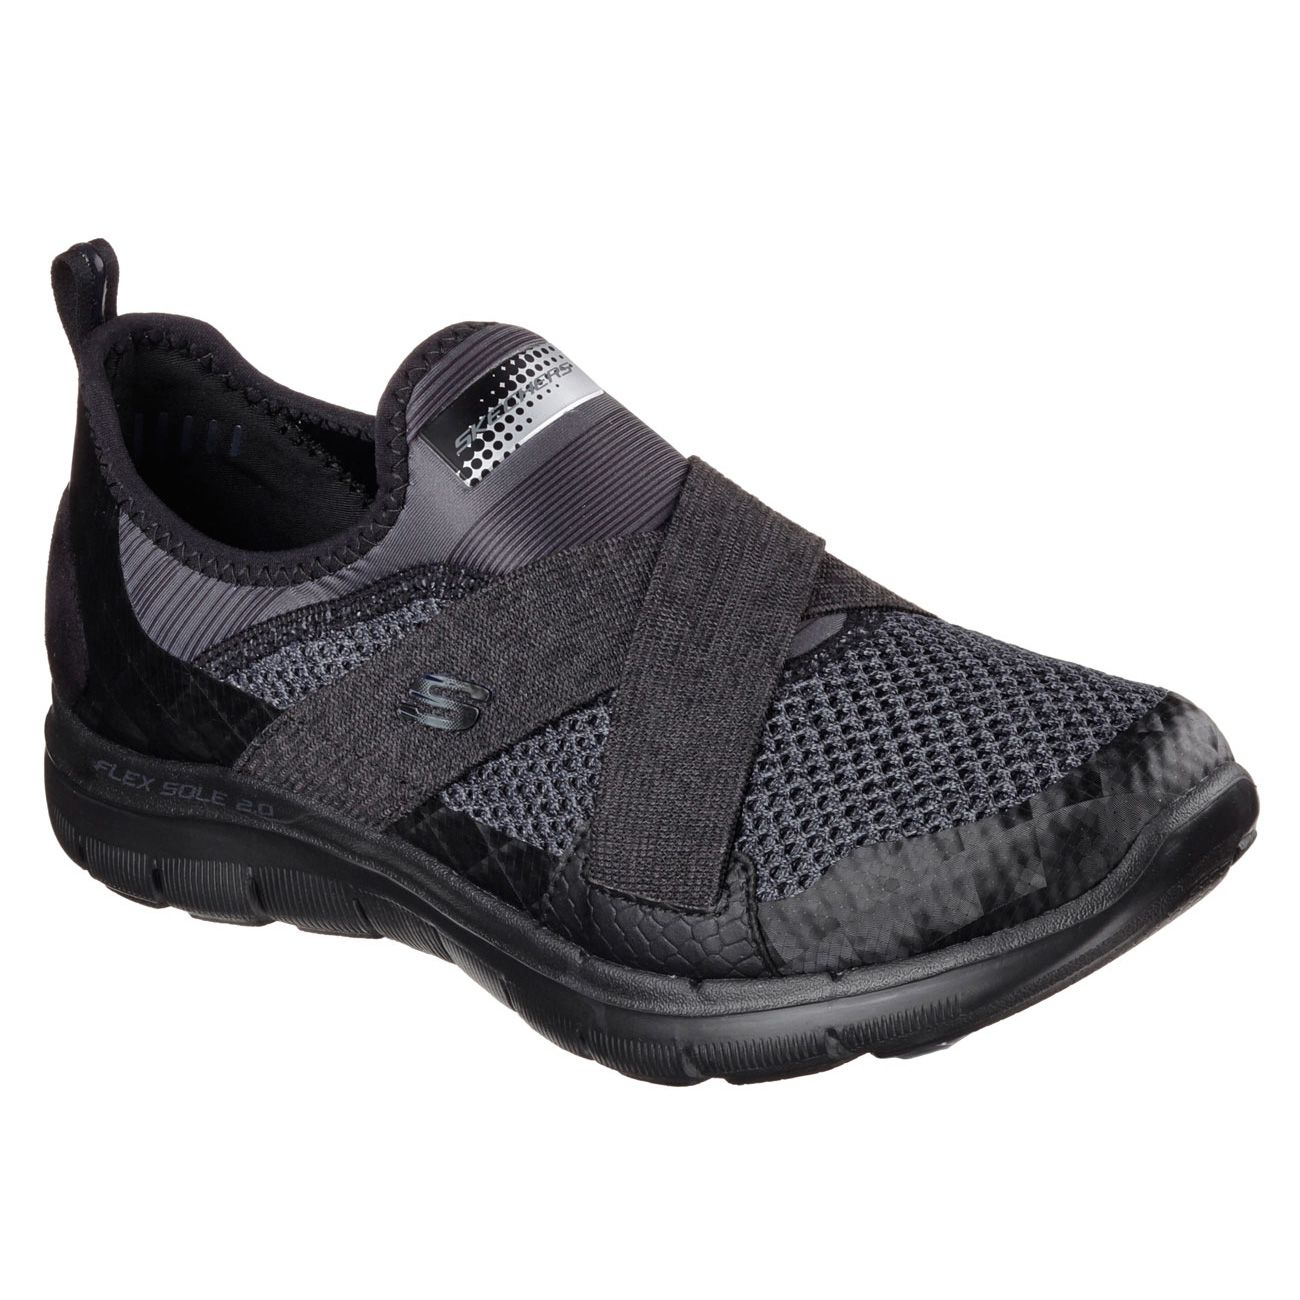 Skechers Sport Running Shoes Review